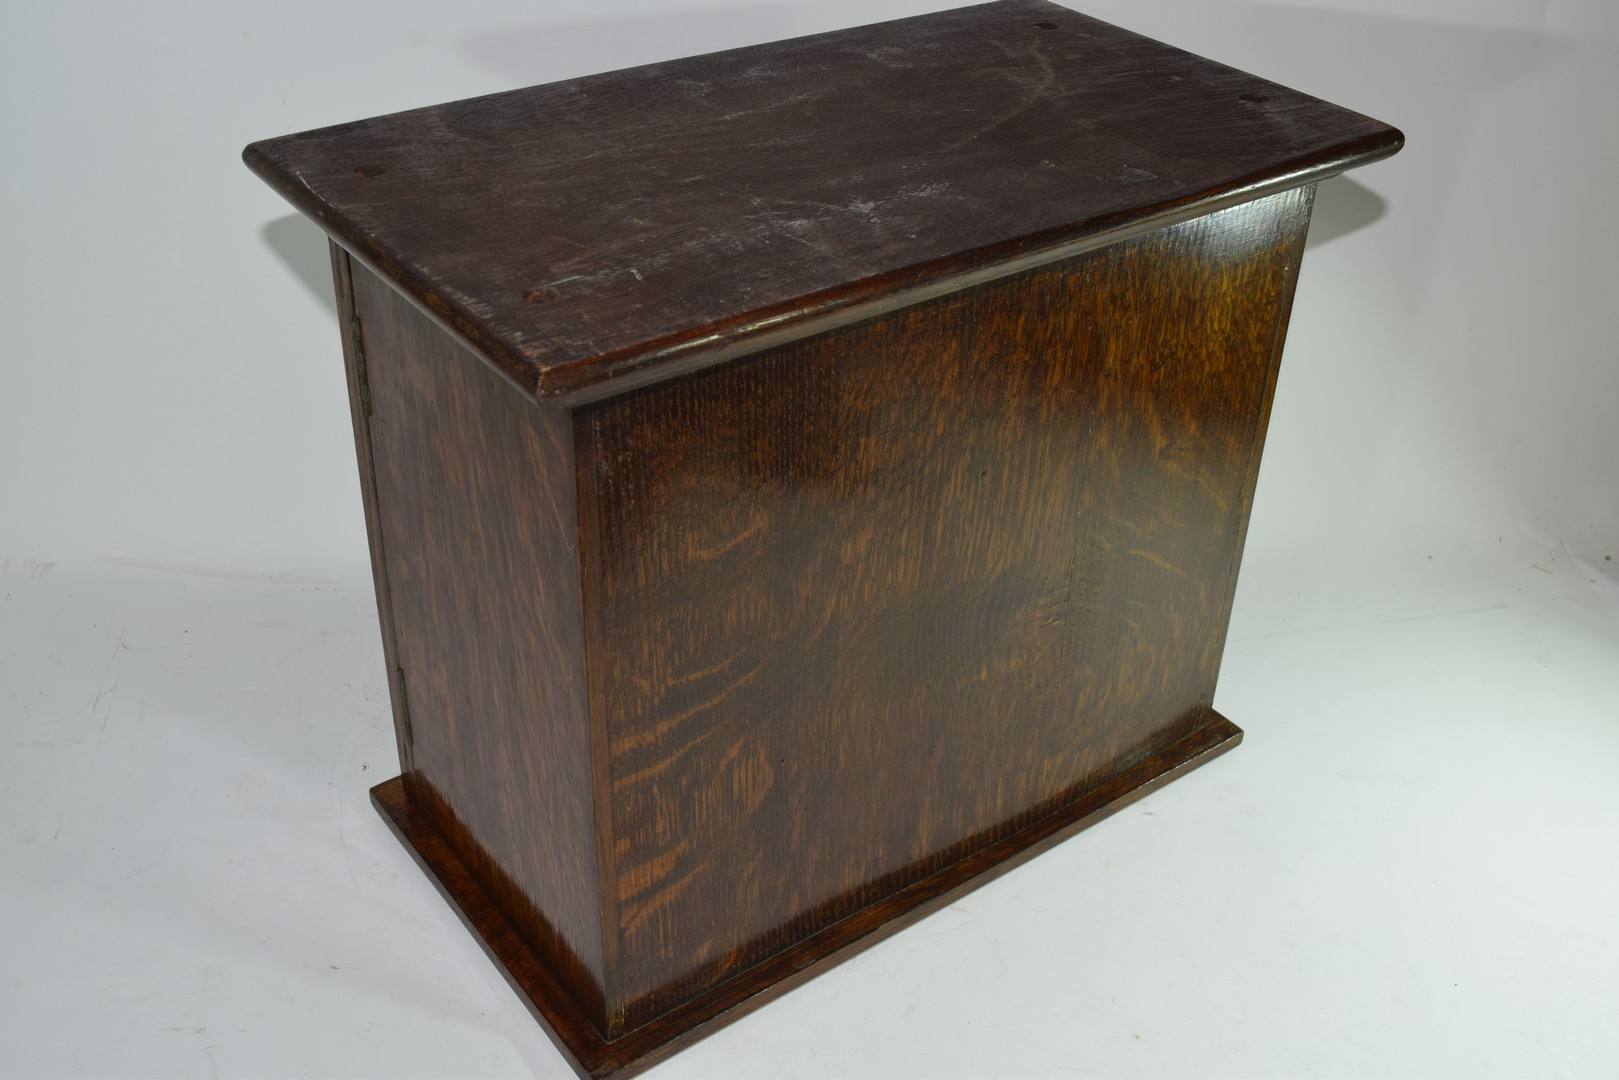 Late 19th century oak smokers cabinet - Image 3 of 5